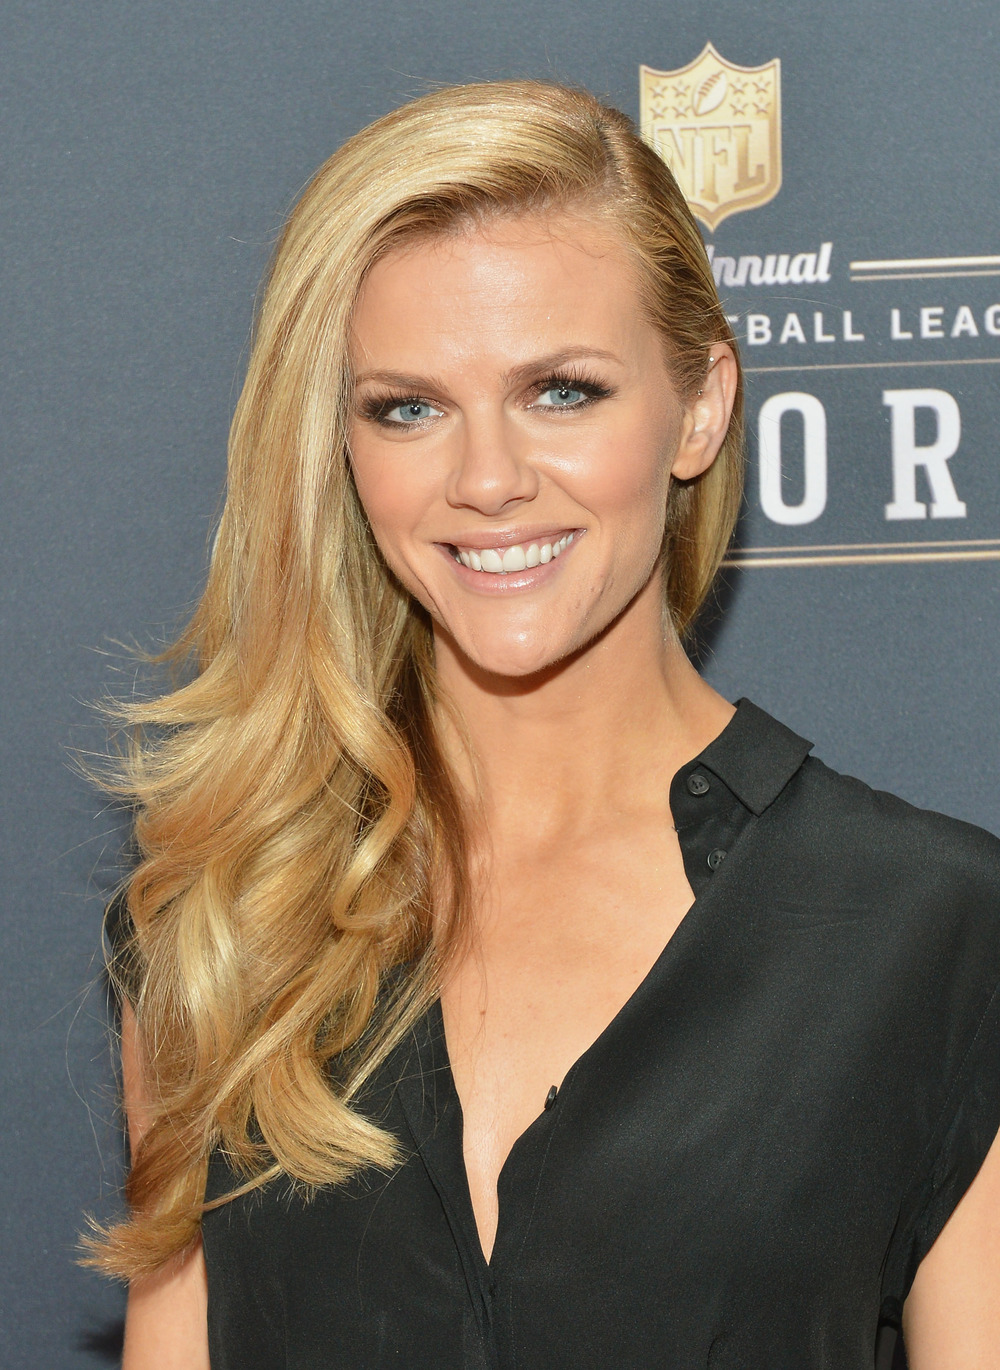 When Will Brooklyn Decker and Andy Roddick Have Their First Child?